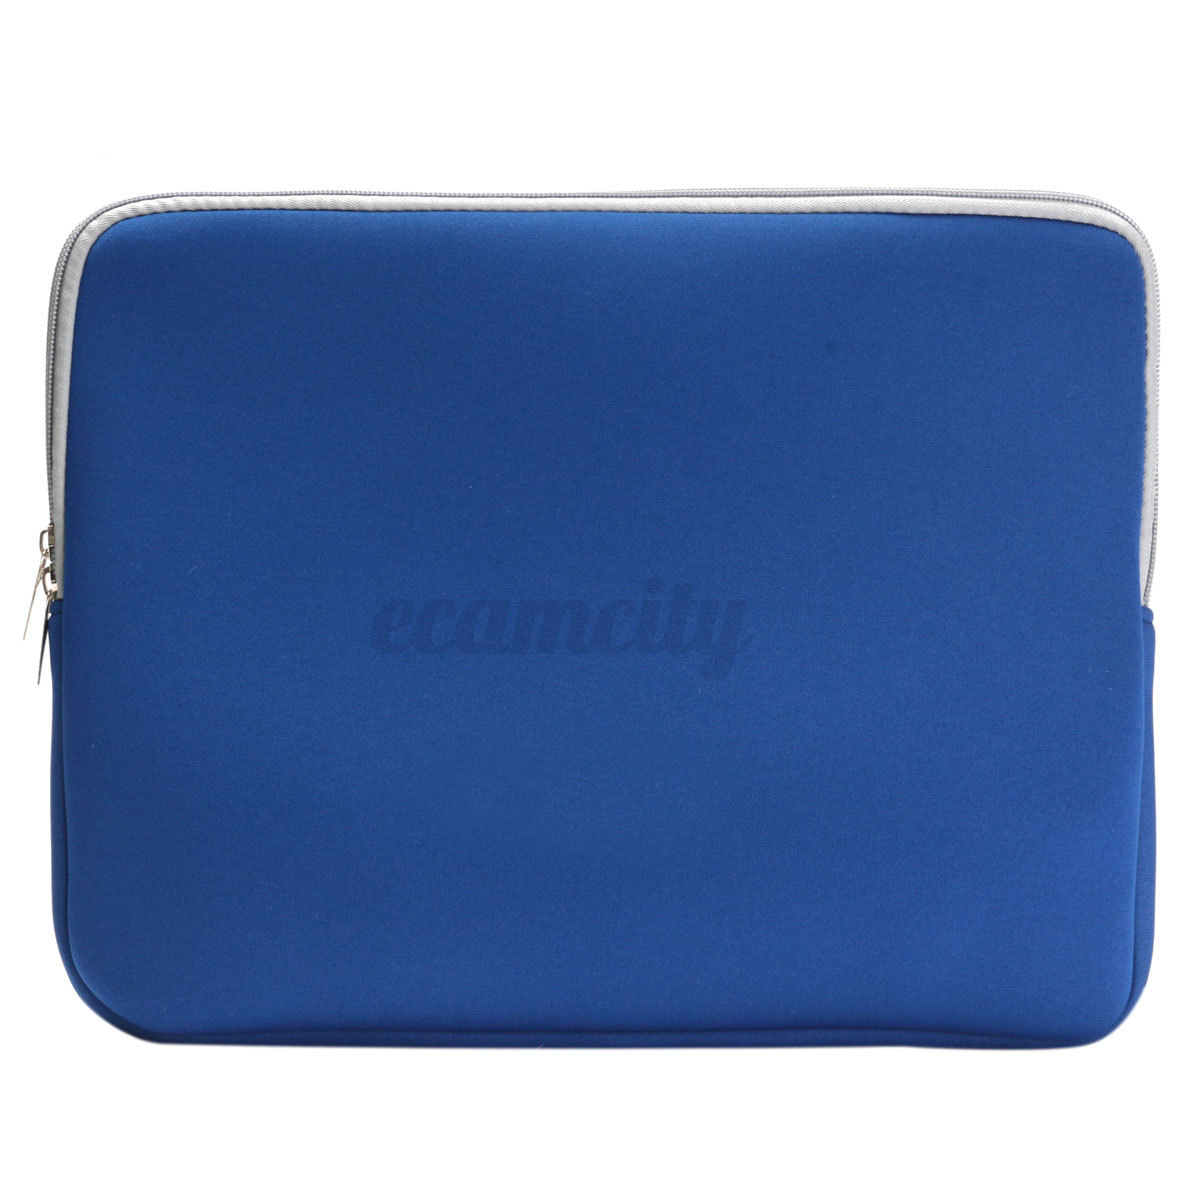 NEW Soft Laptop Carry Bag Sleeve Case Pouch Cover For 13'' MacBook Air/Pro 15''